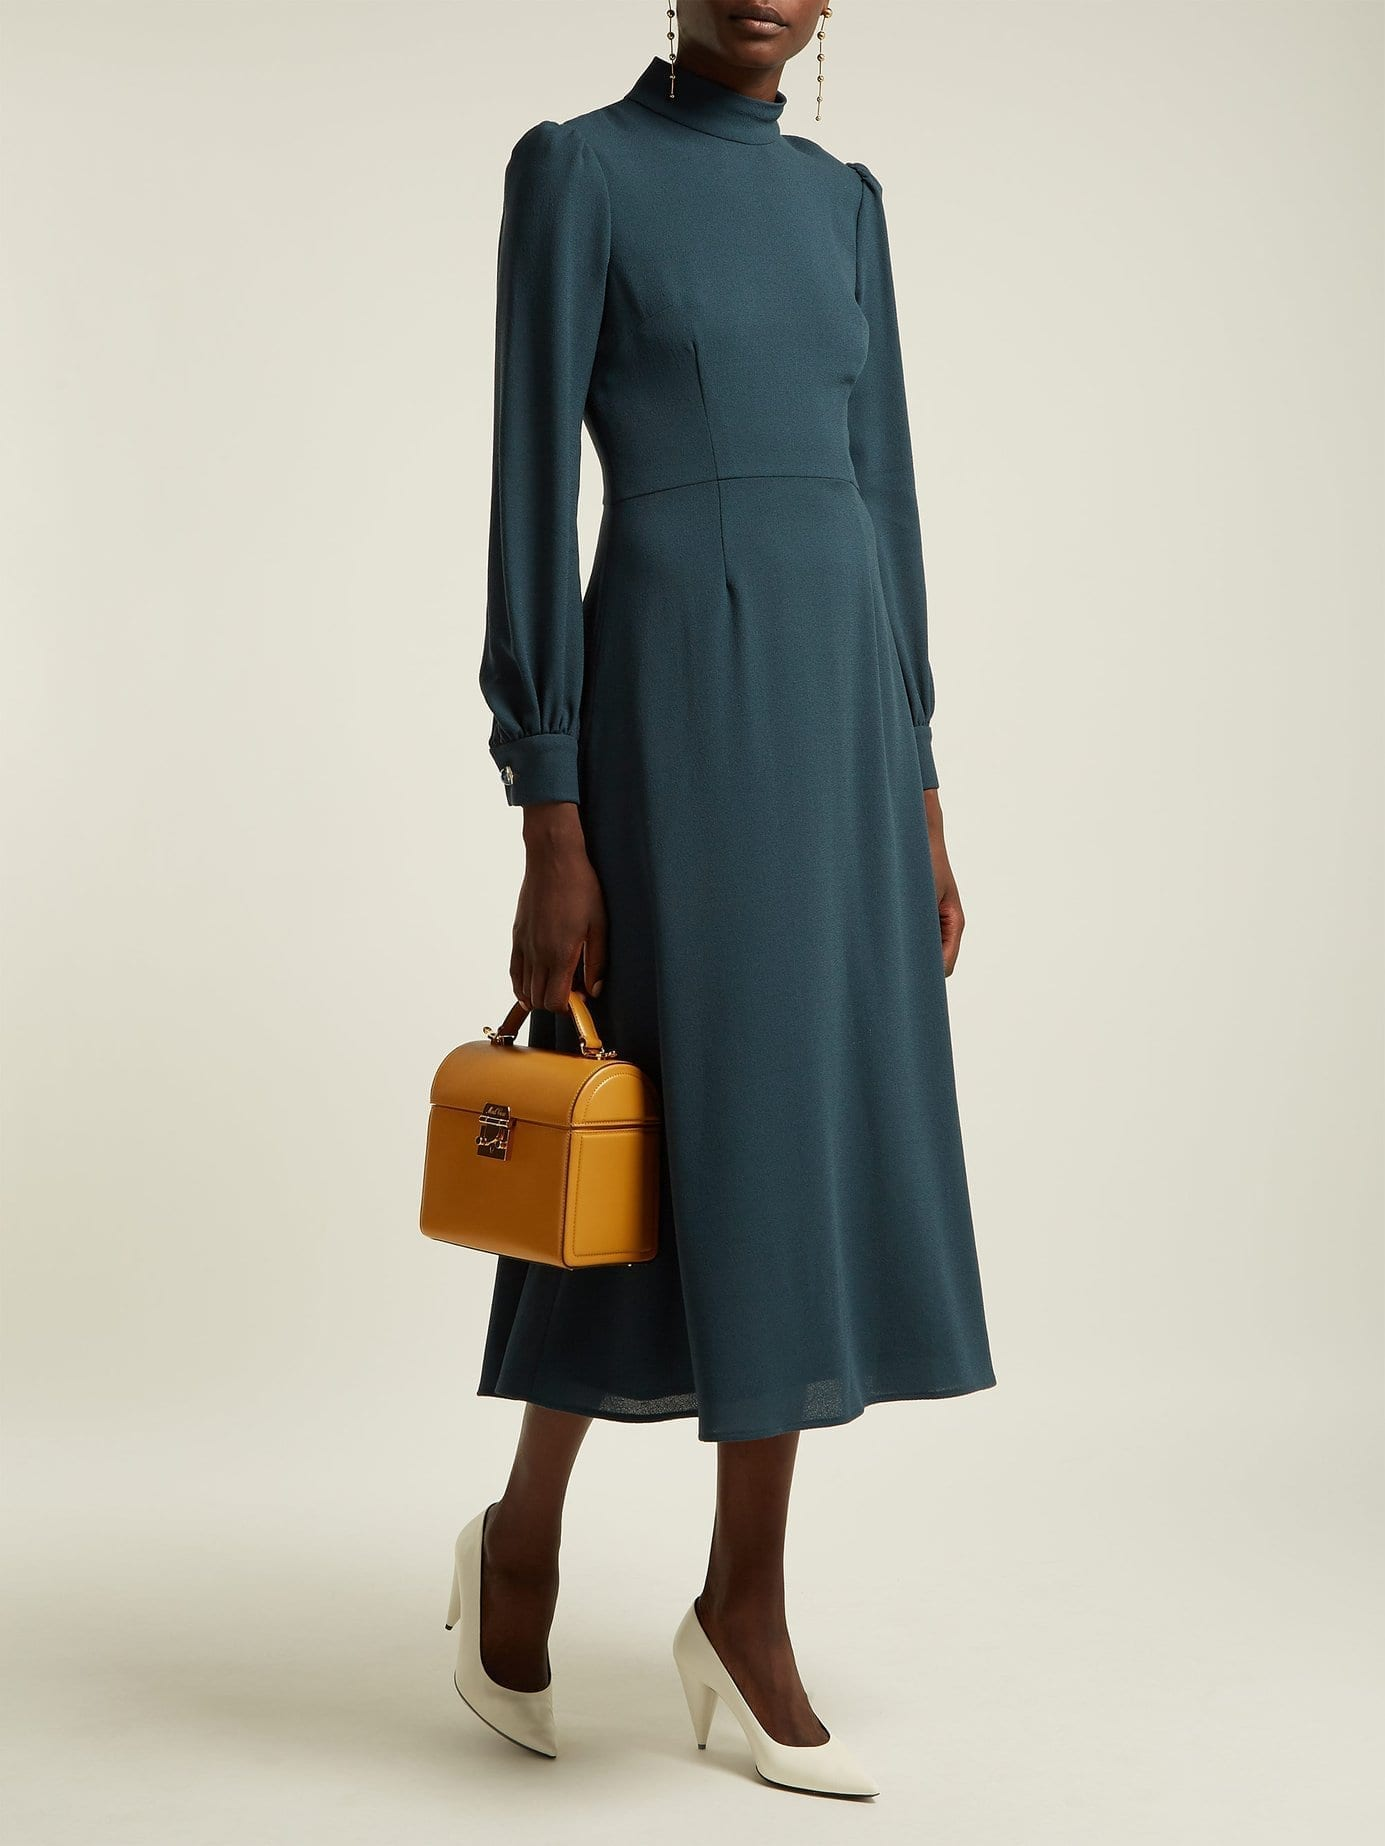 GOAT Goldfinch Wool Crepe Teal Blue Dress